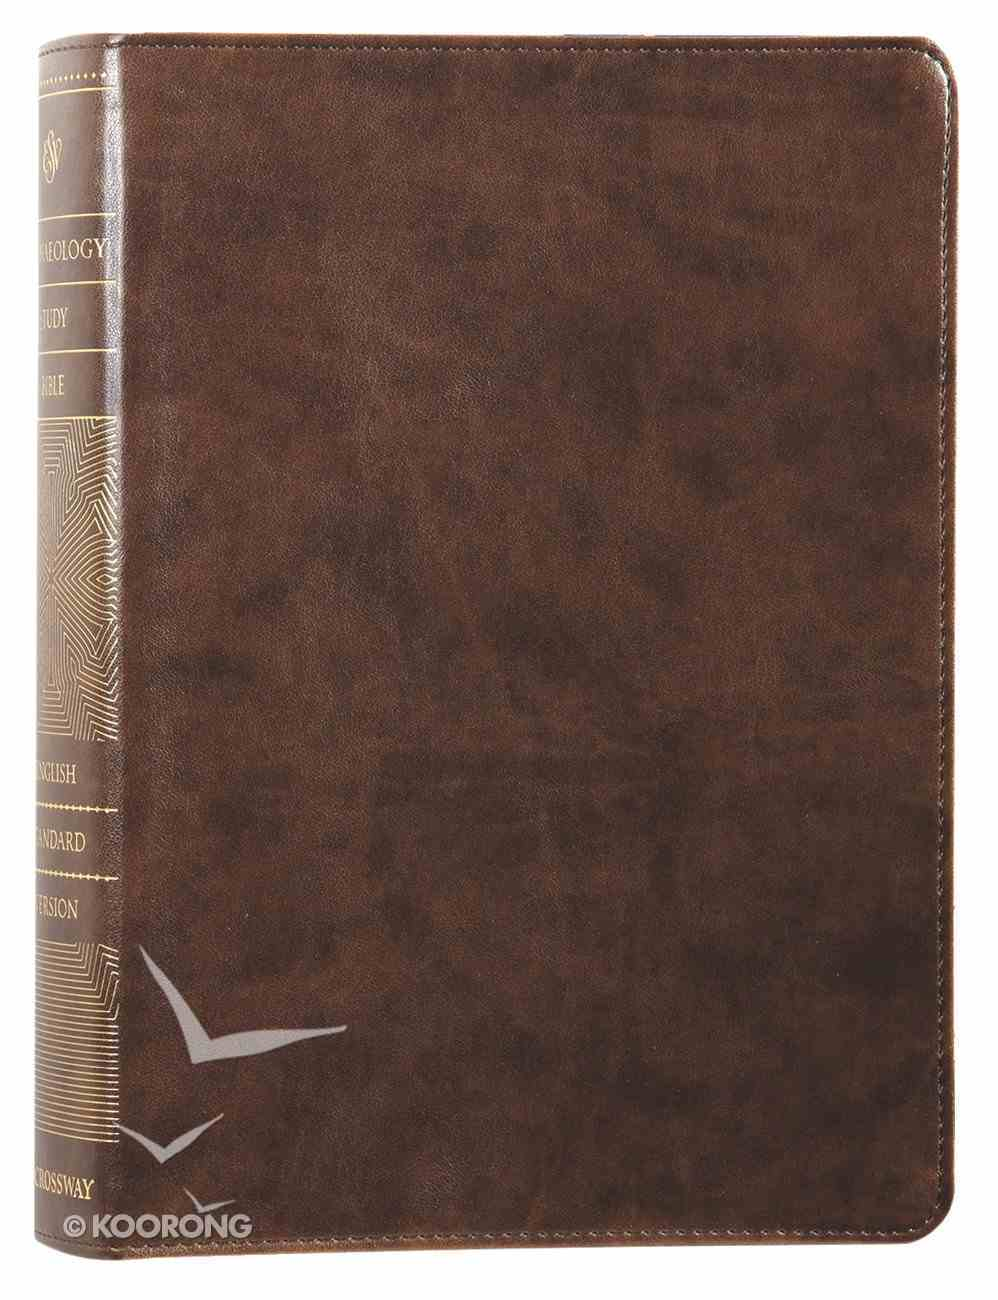 ESV Archaeology Study Bible Brown (Black Letter Edition) Imitation Leather